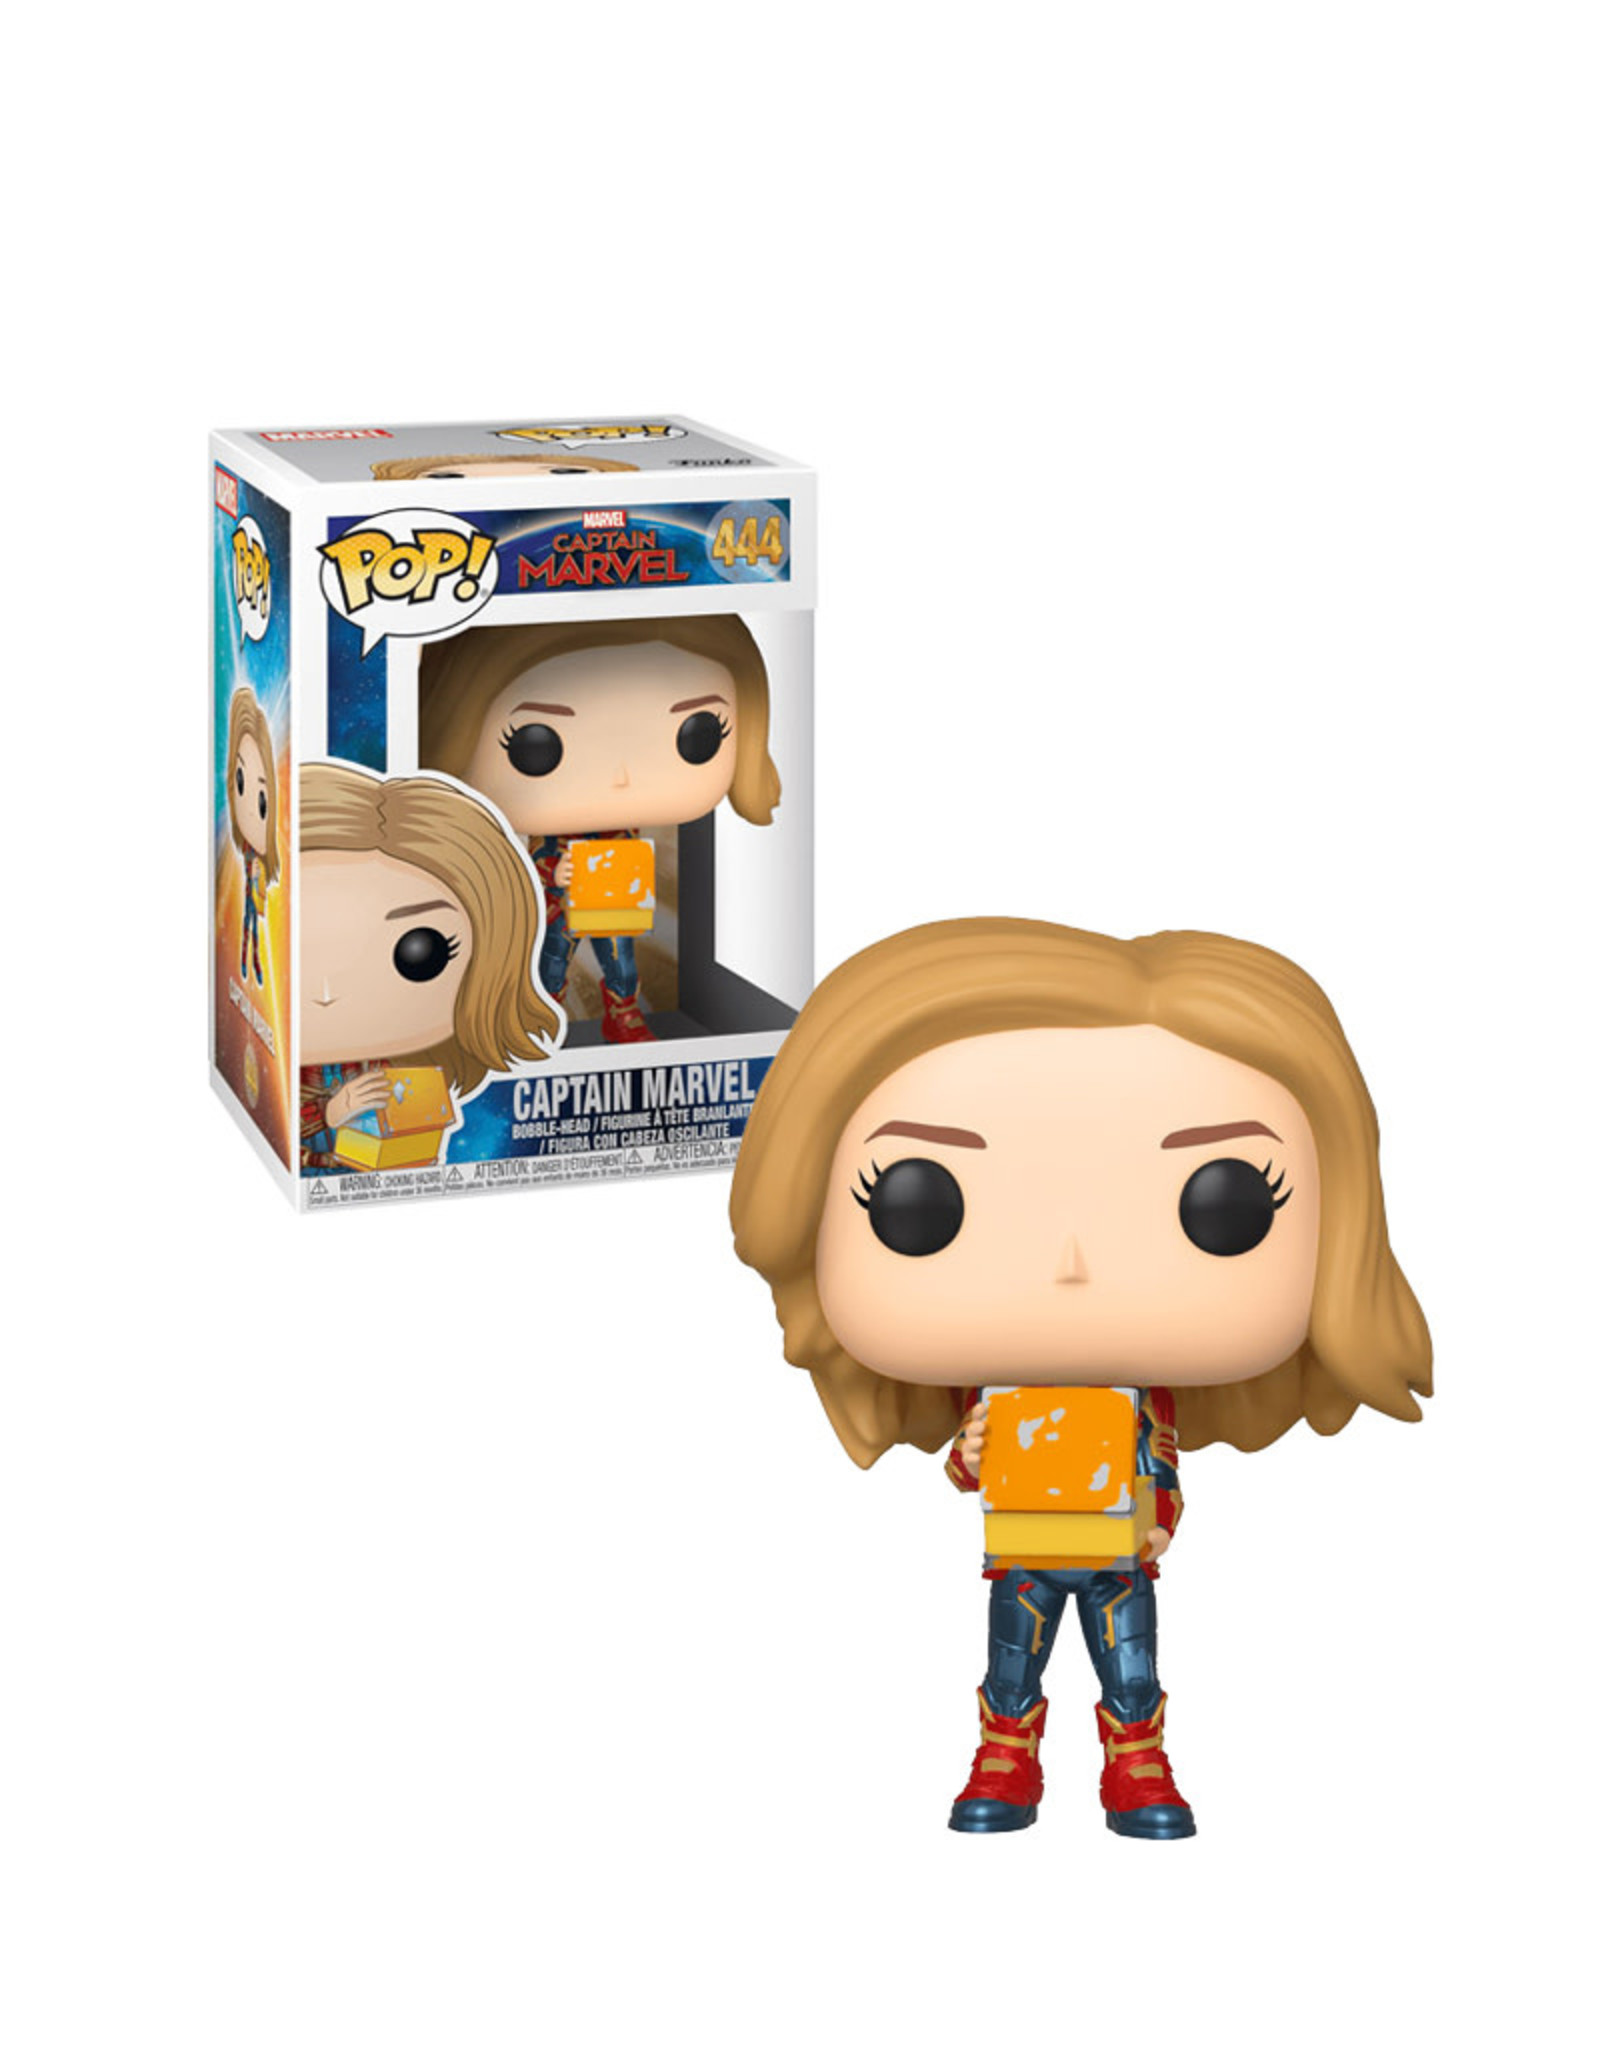 Marvel Captain Marvel 444 ( Funko Pop ) Captain Marvel